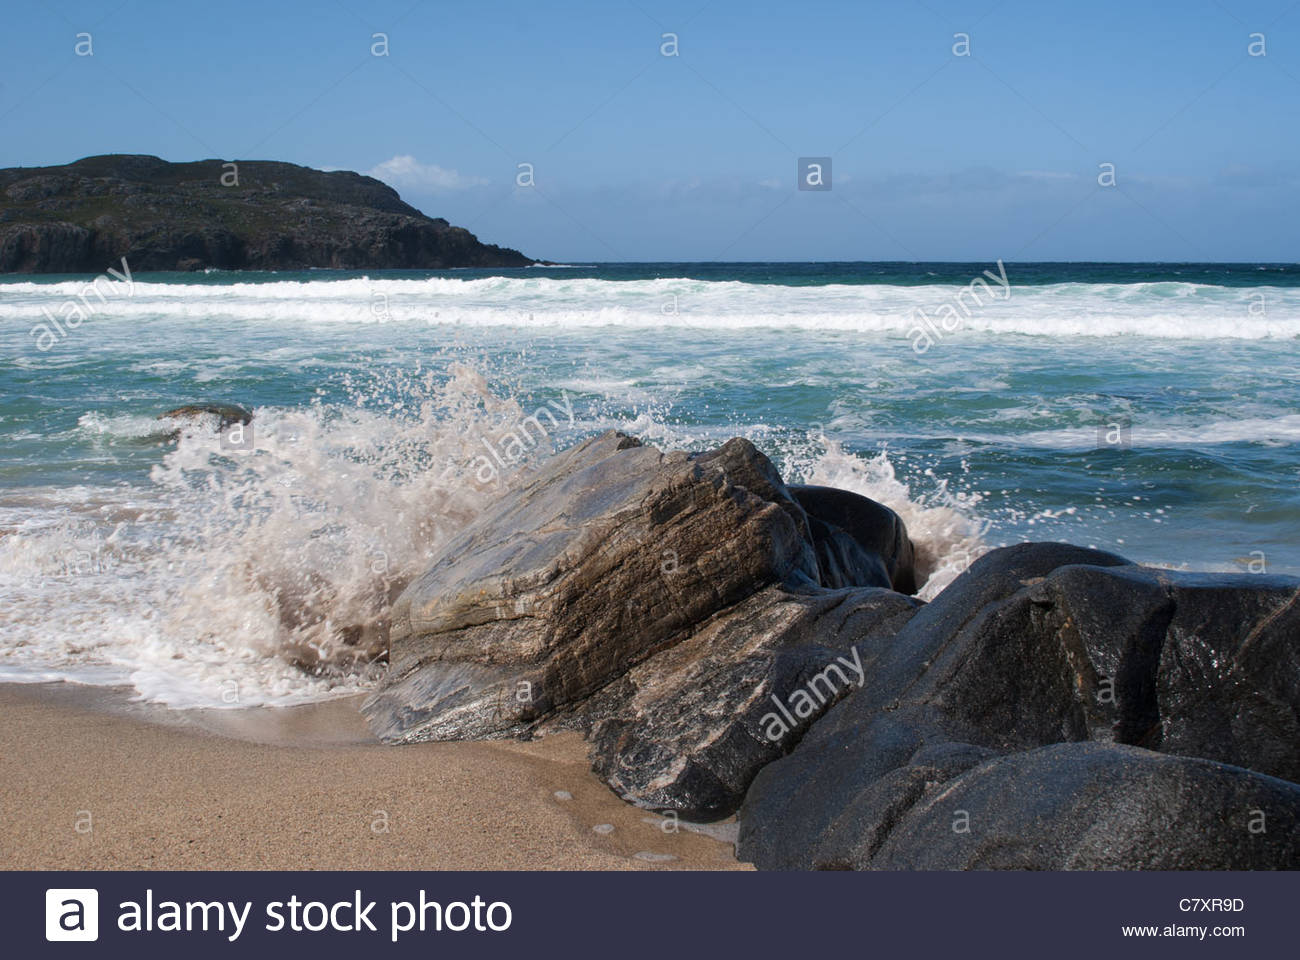 Traigh Mhor Beach, Tolsta, Lewis, Isles of Lewis and Harris, Outer Hebrides, aka Western Isles, Scotland, UK - Stock Image